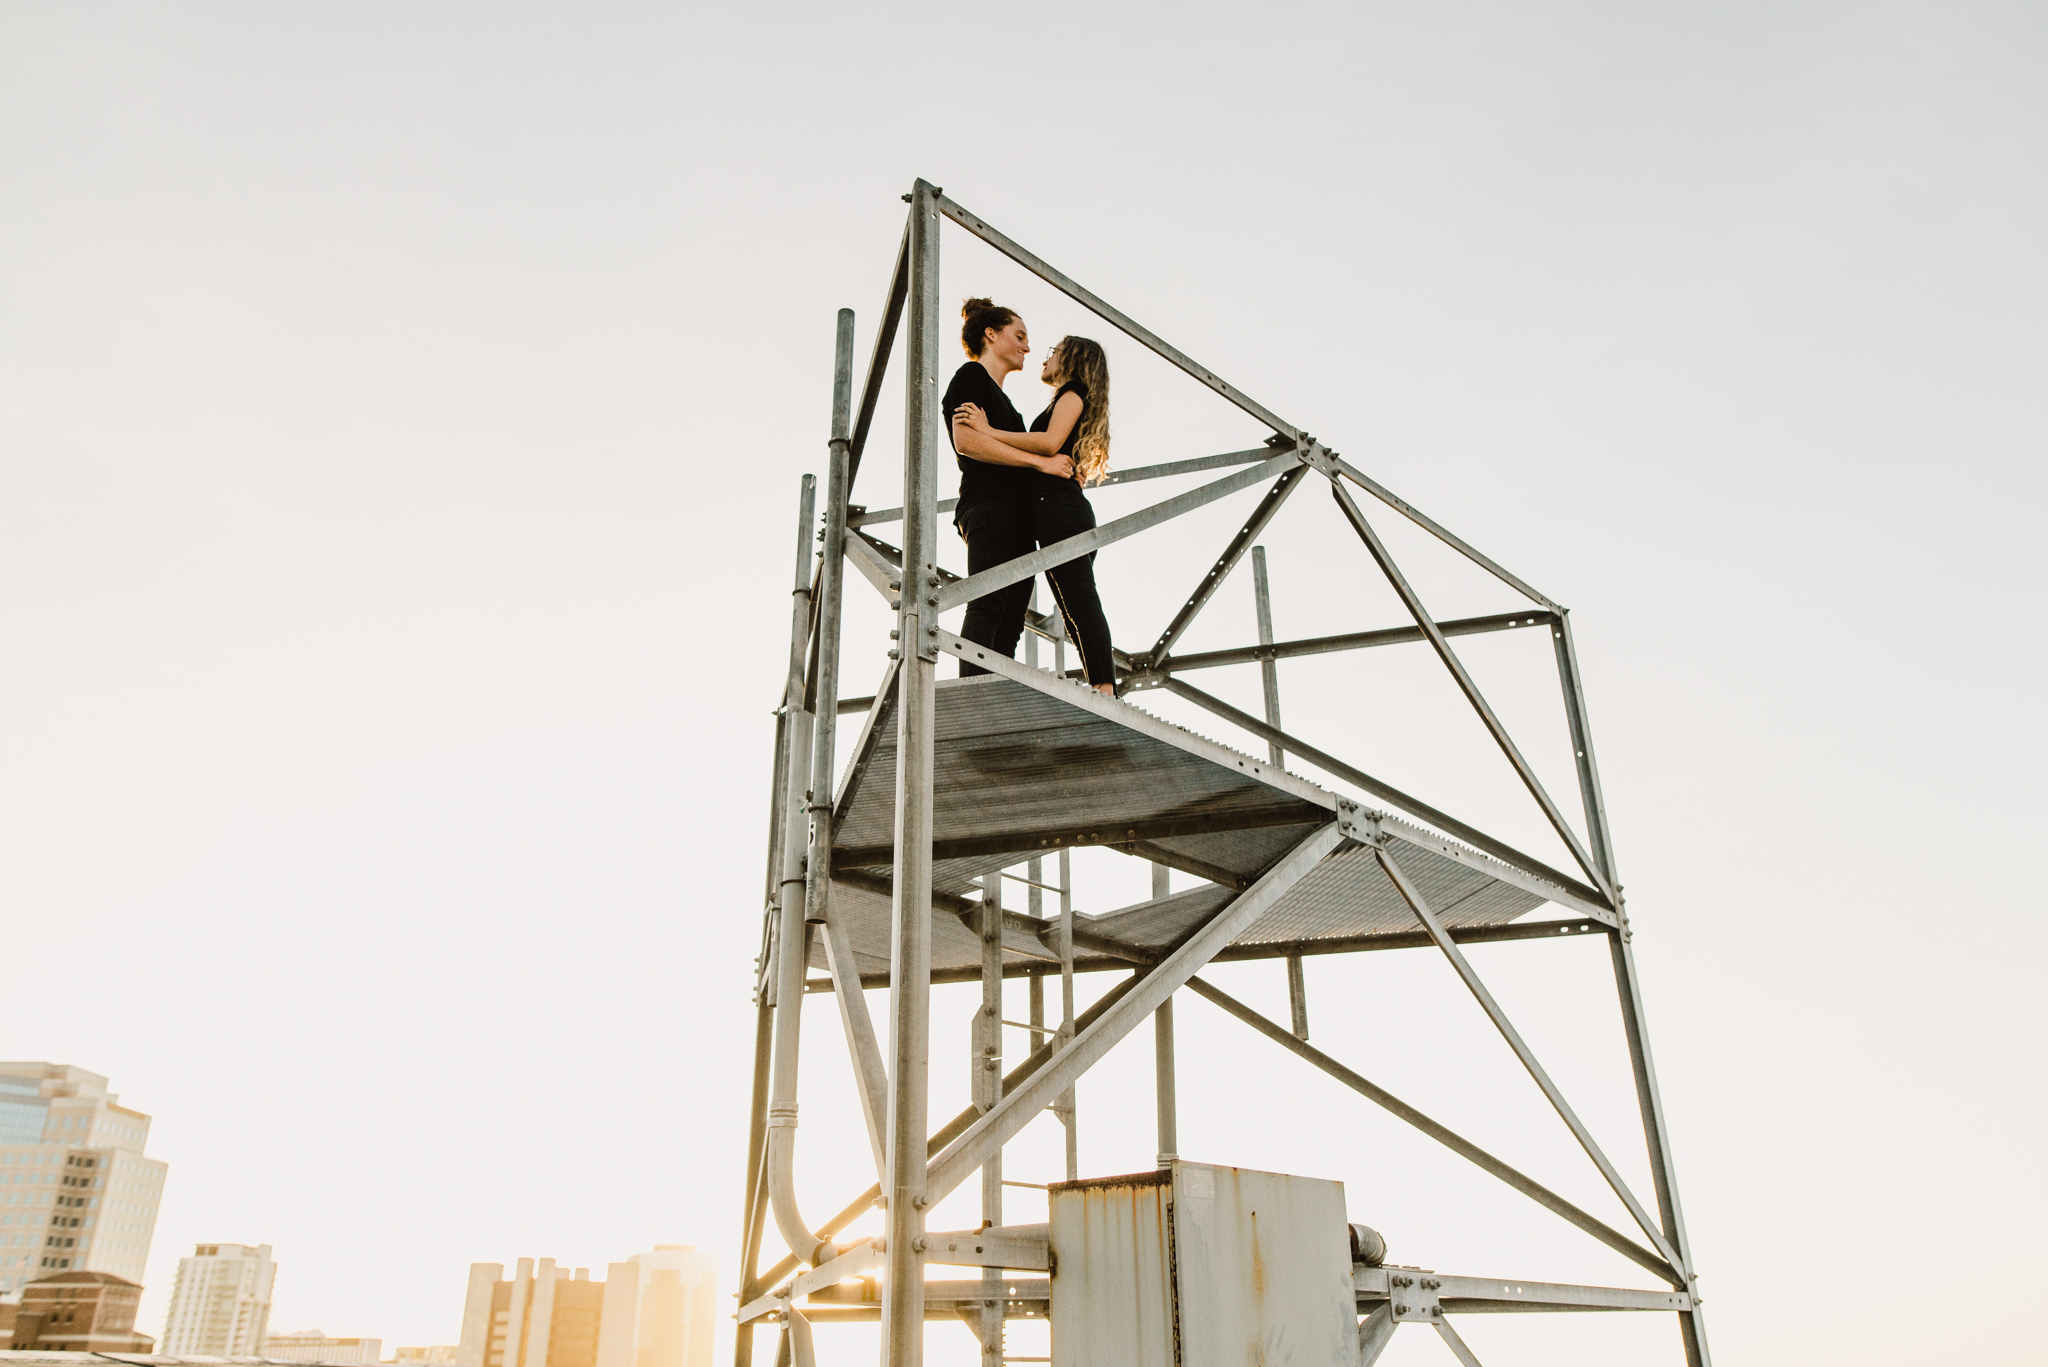 ©Isaiah-&-Taylor-Photography---Urban-Rooftop-Engagement,-Los-Angeles-Wedding-Photographer-010.jpg